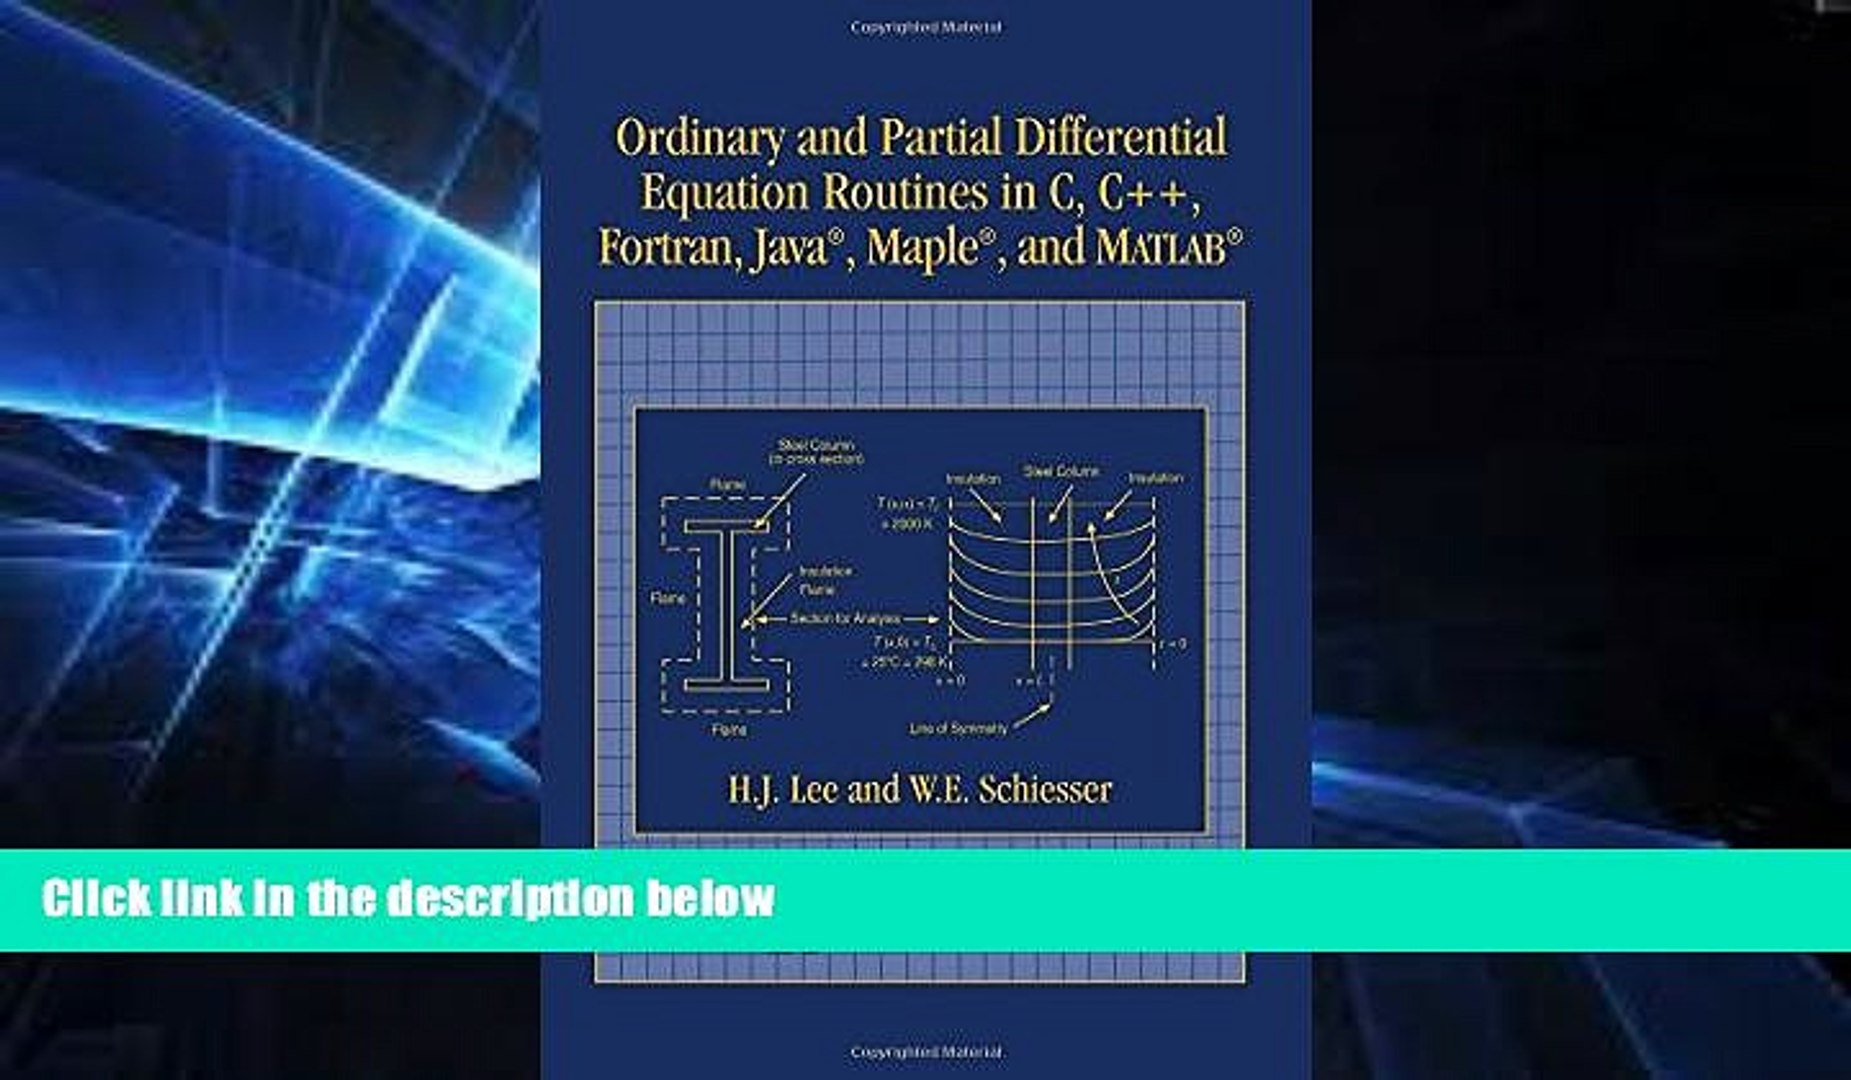 READ FULL Ordinary and Partial Differential Equation Routines in C, C++,  Fortran, Java, Maple,